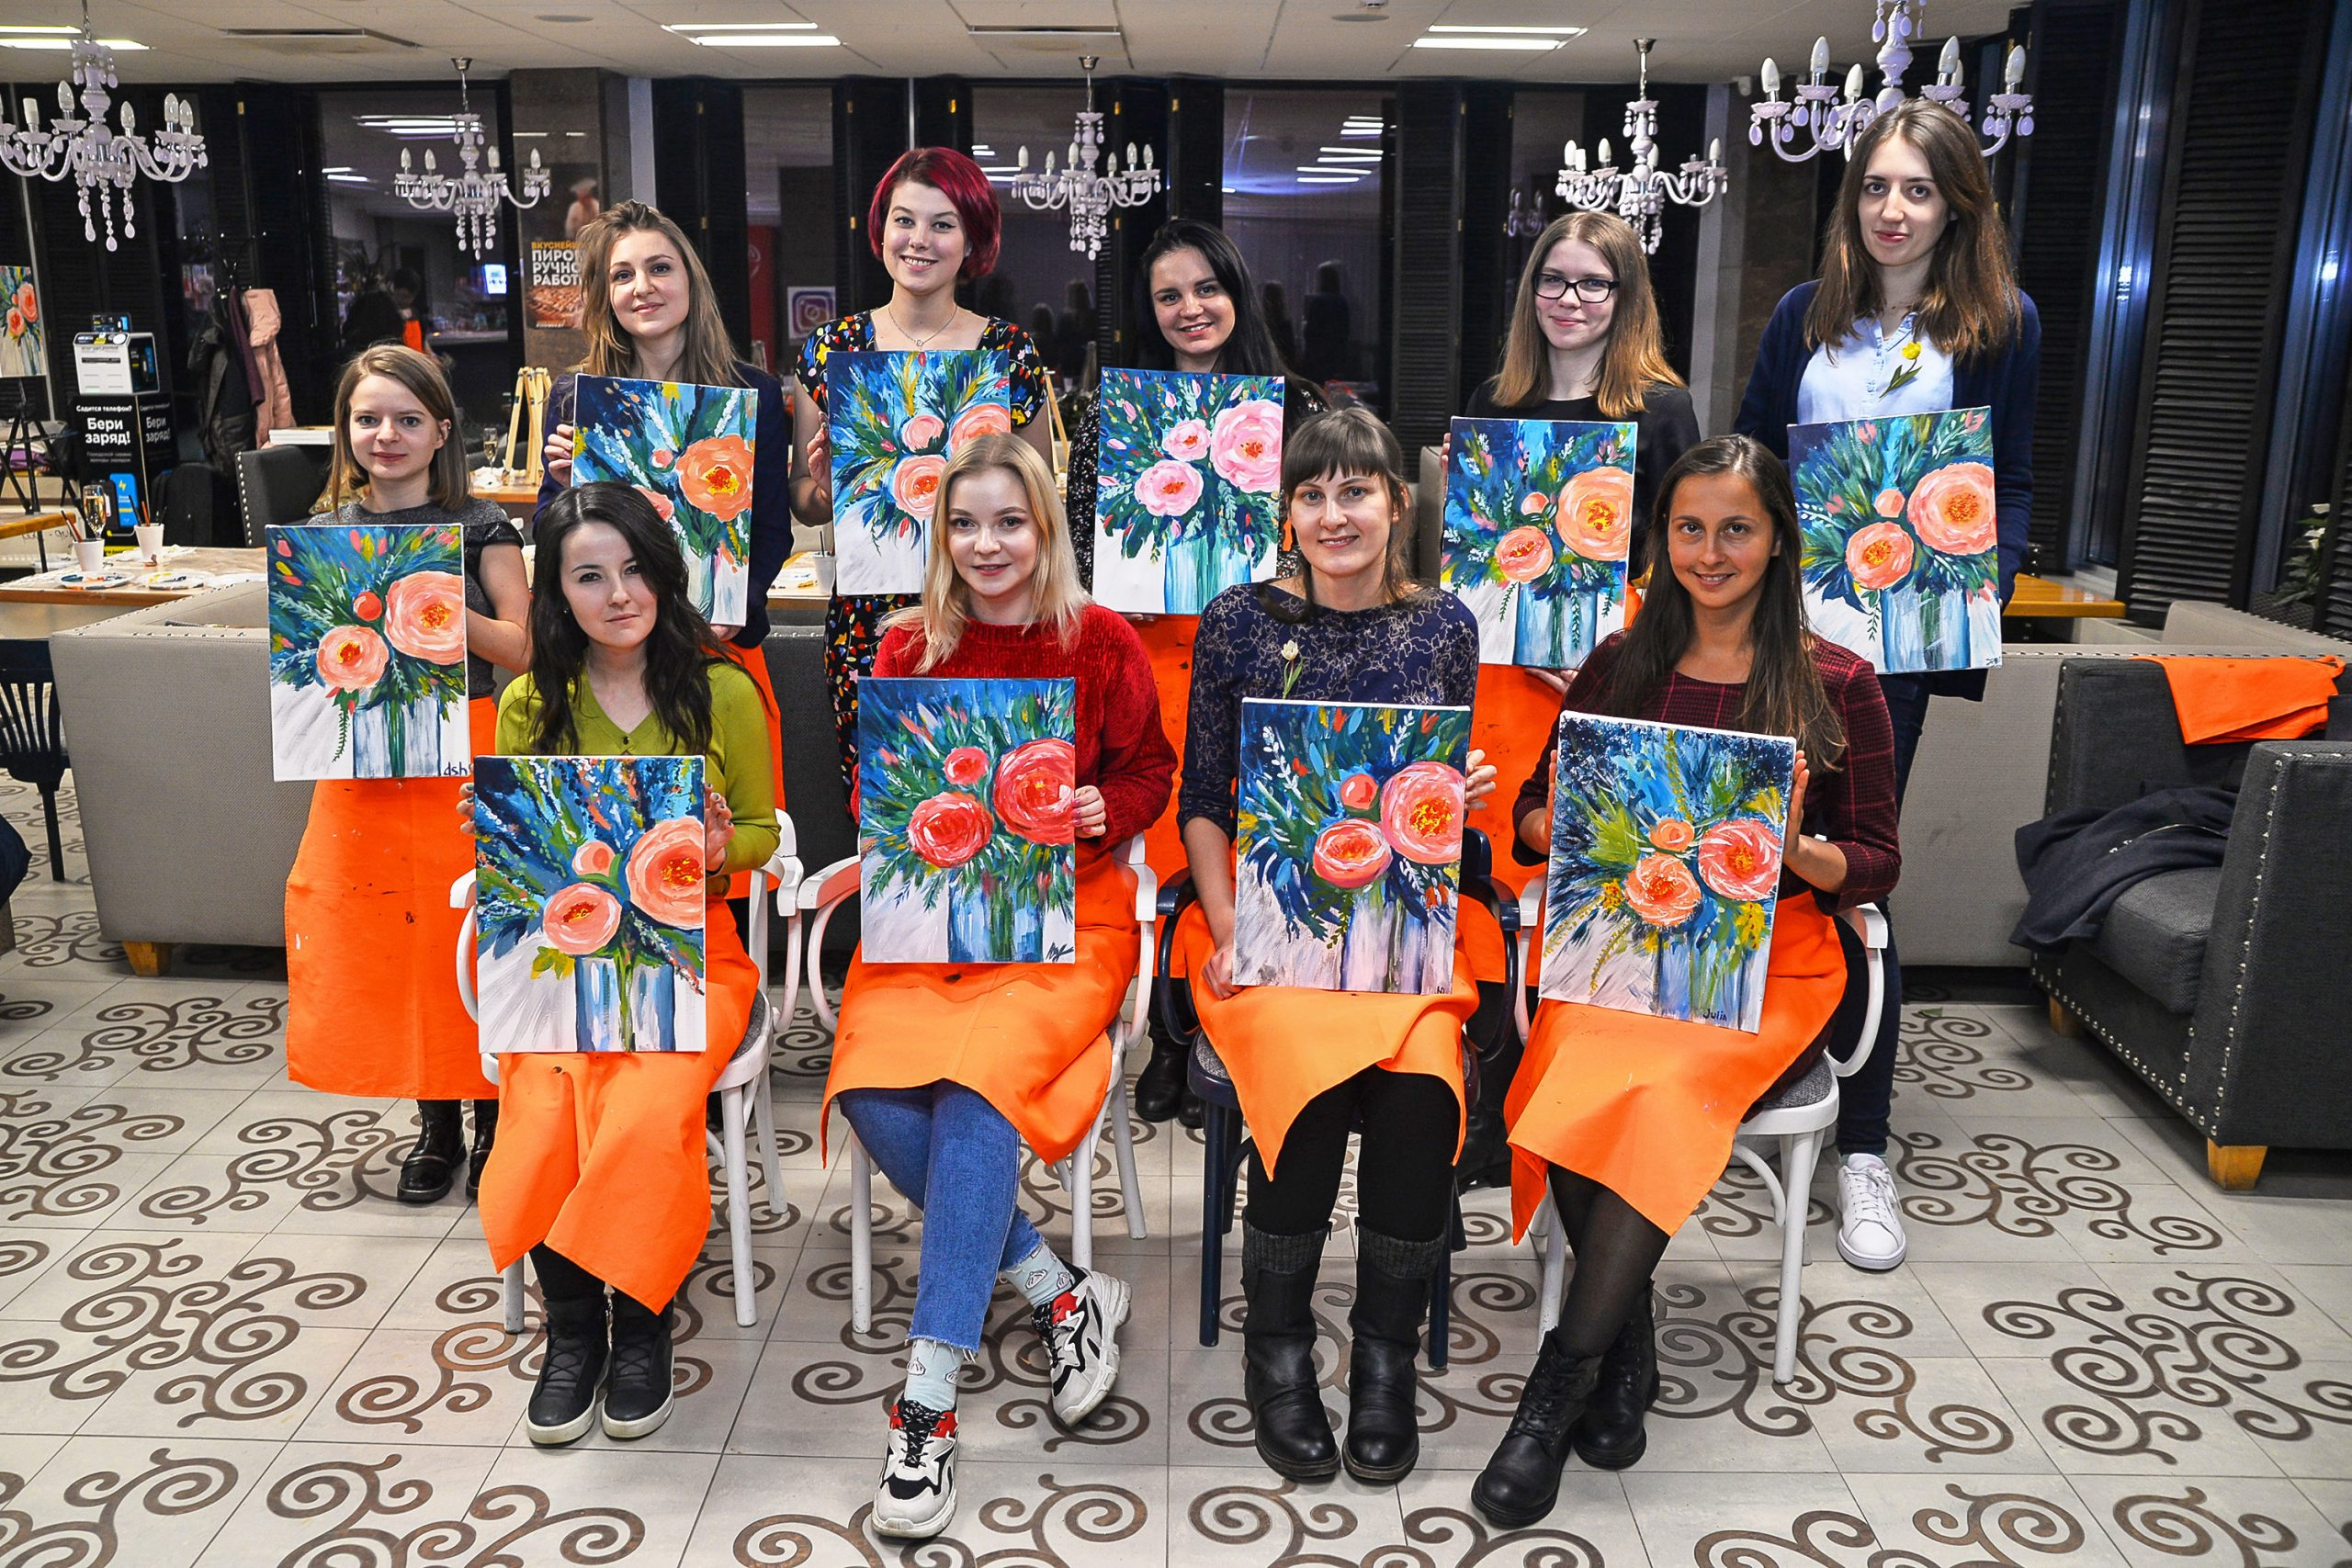 Girls painted pictures on the 8 March holiday